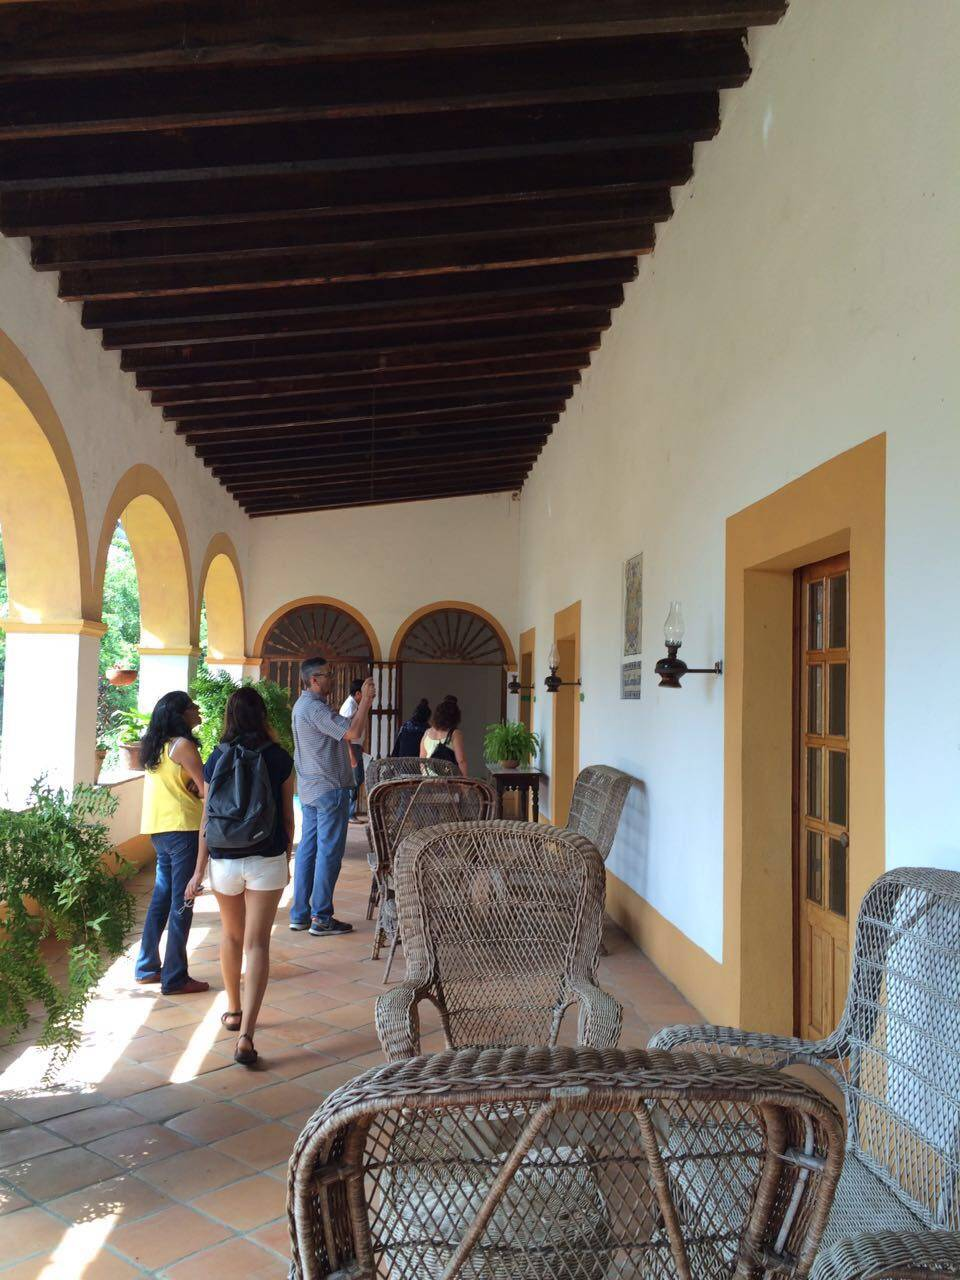 Xalapa Xico And Coatepec Tour From Veracruz Or Boca Del Rio